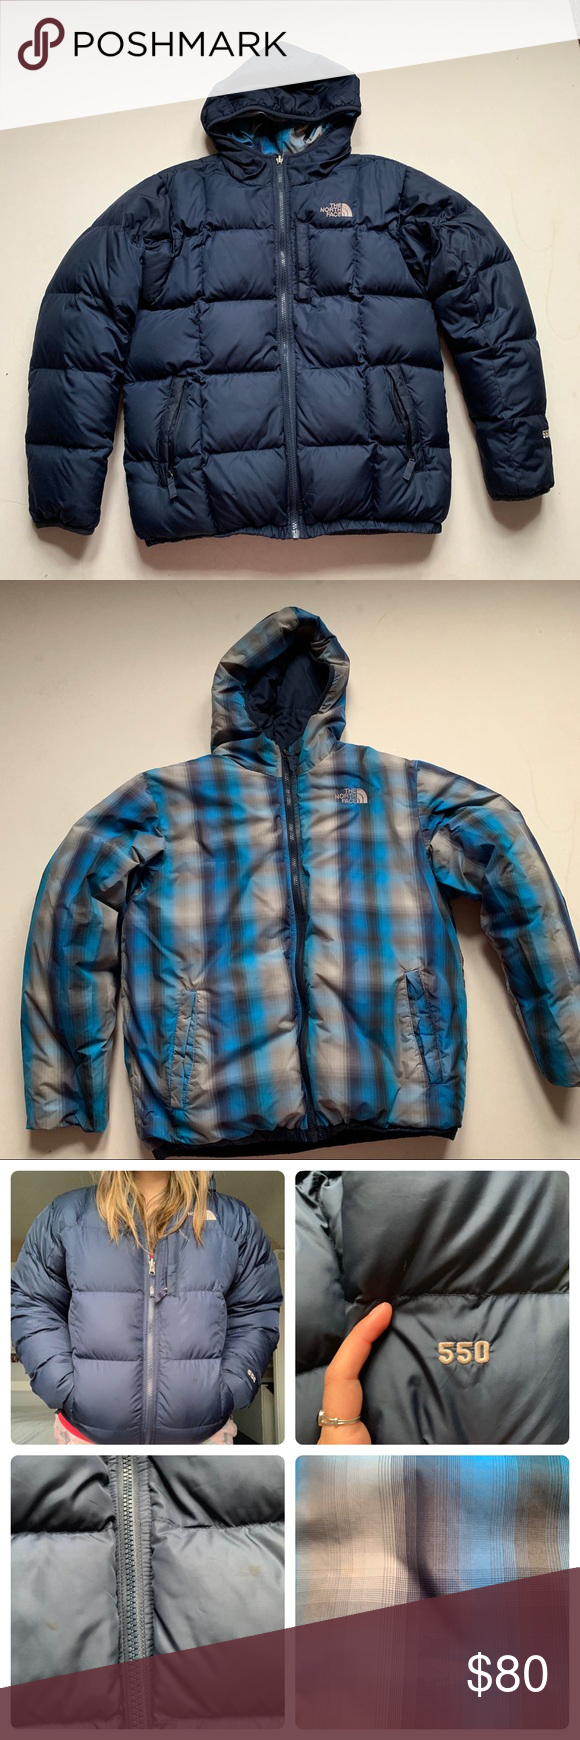 The North Face Navy 550 Puffer Reversible Jacket Reversible Jackets Clothes Design North Face Jacket [ 1740 x 580 Pixel ]